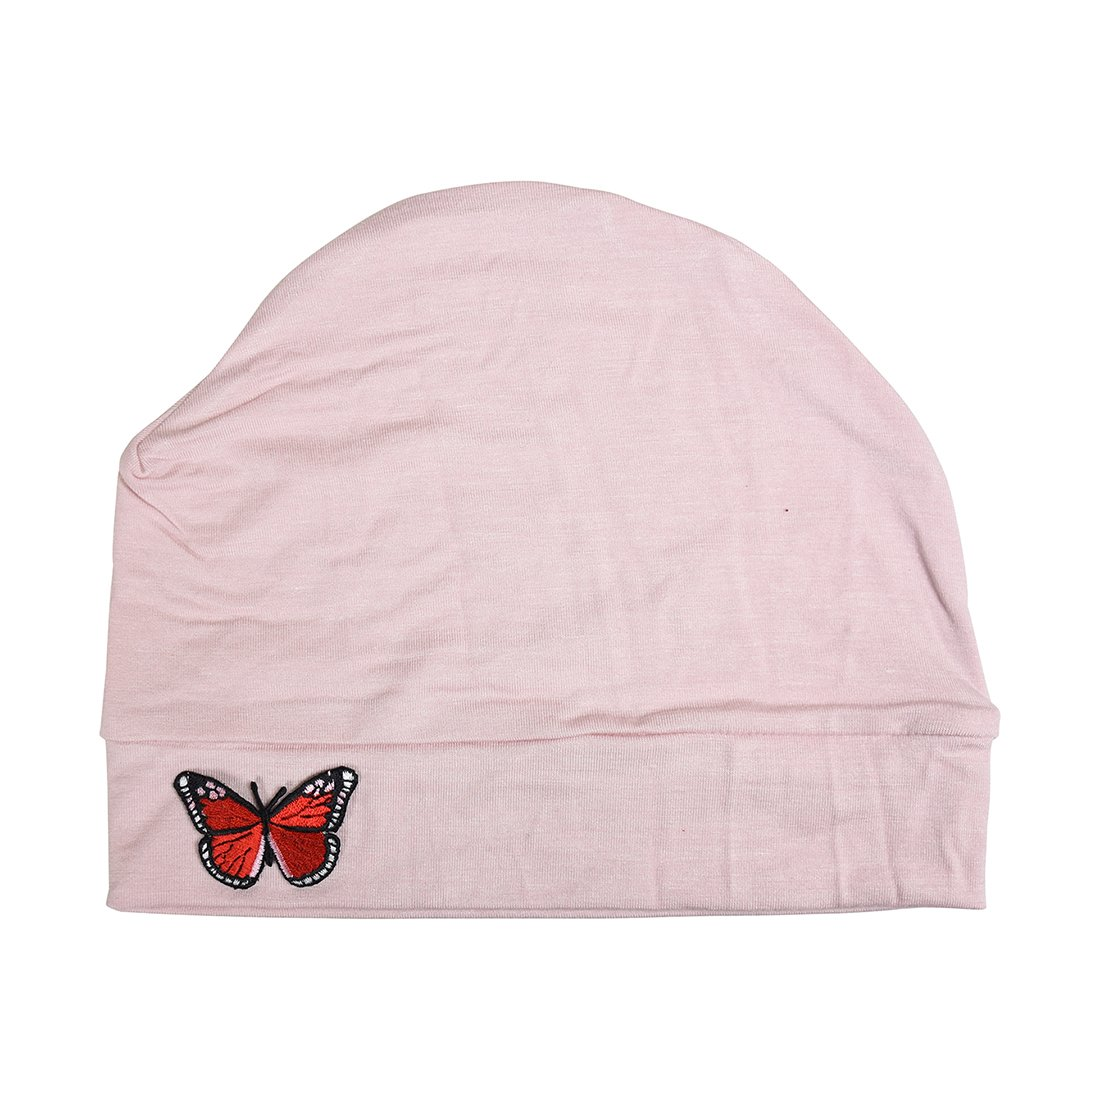 Light Pink Womens Soft Chemo Cap and Sleep Turban with Red Butterfly